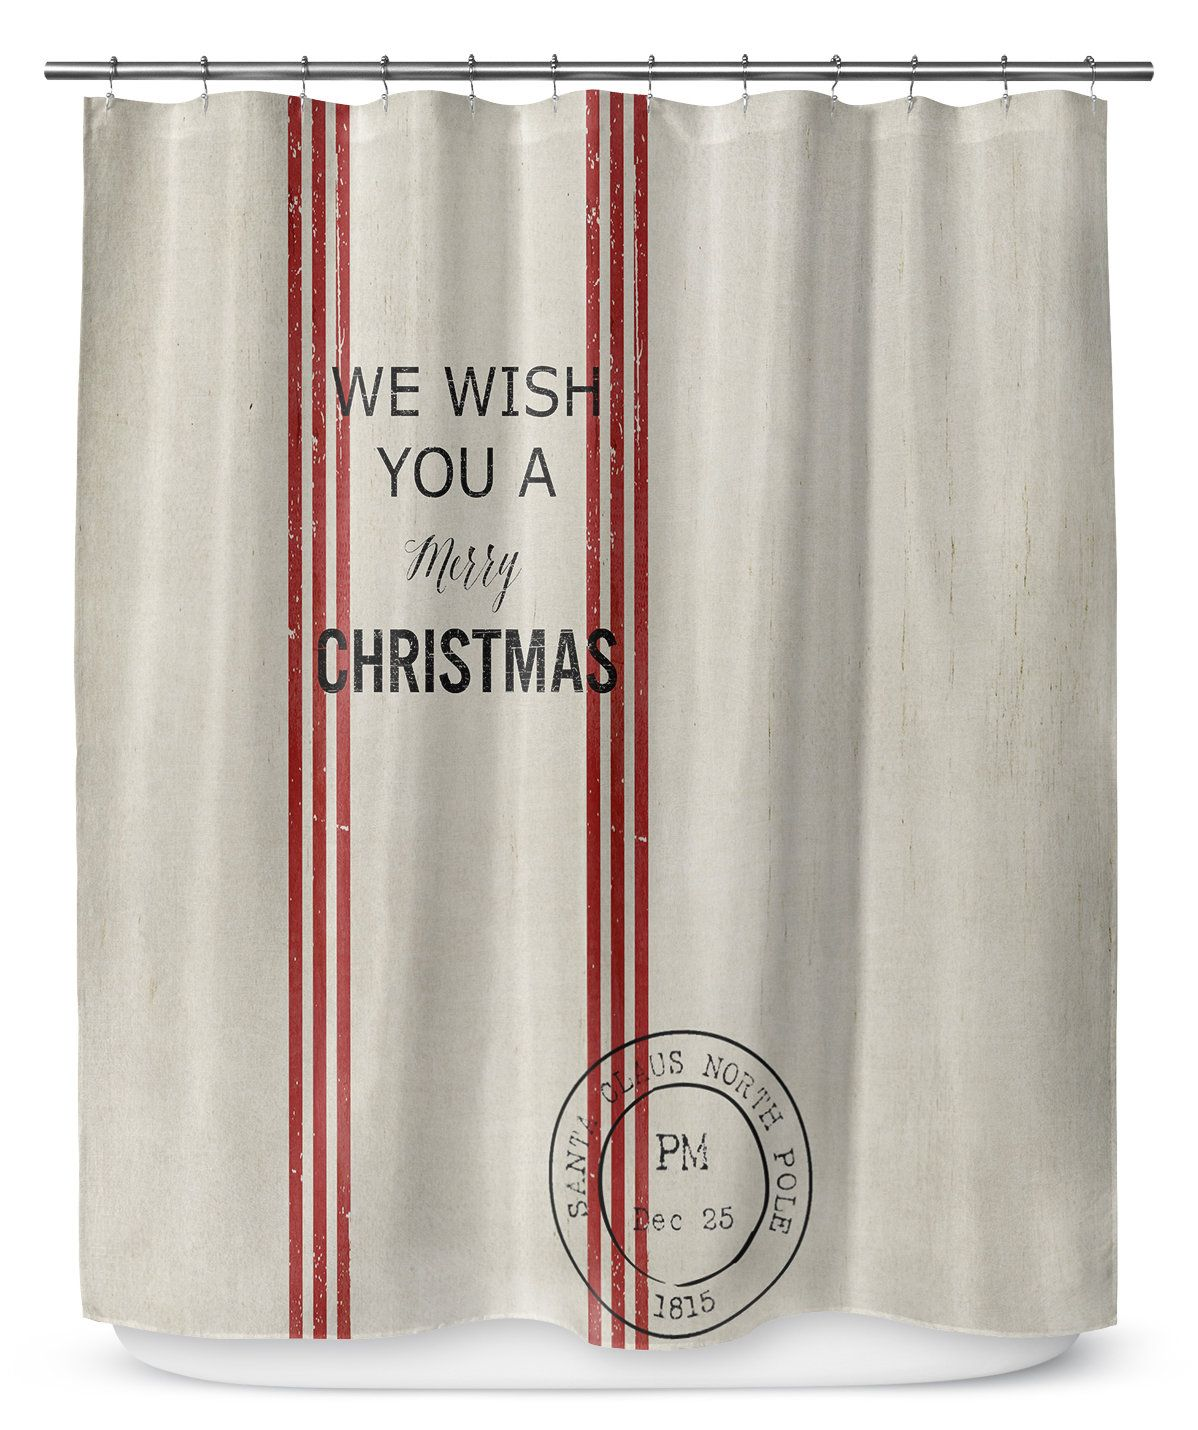 We Wish You A Merry Christmas 90 Shower Curtain Products